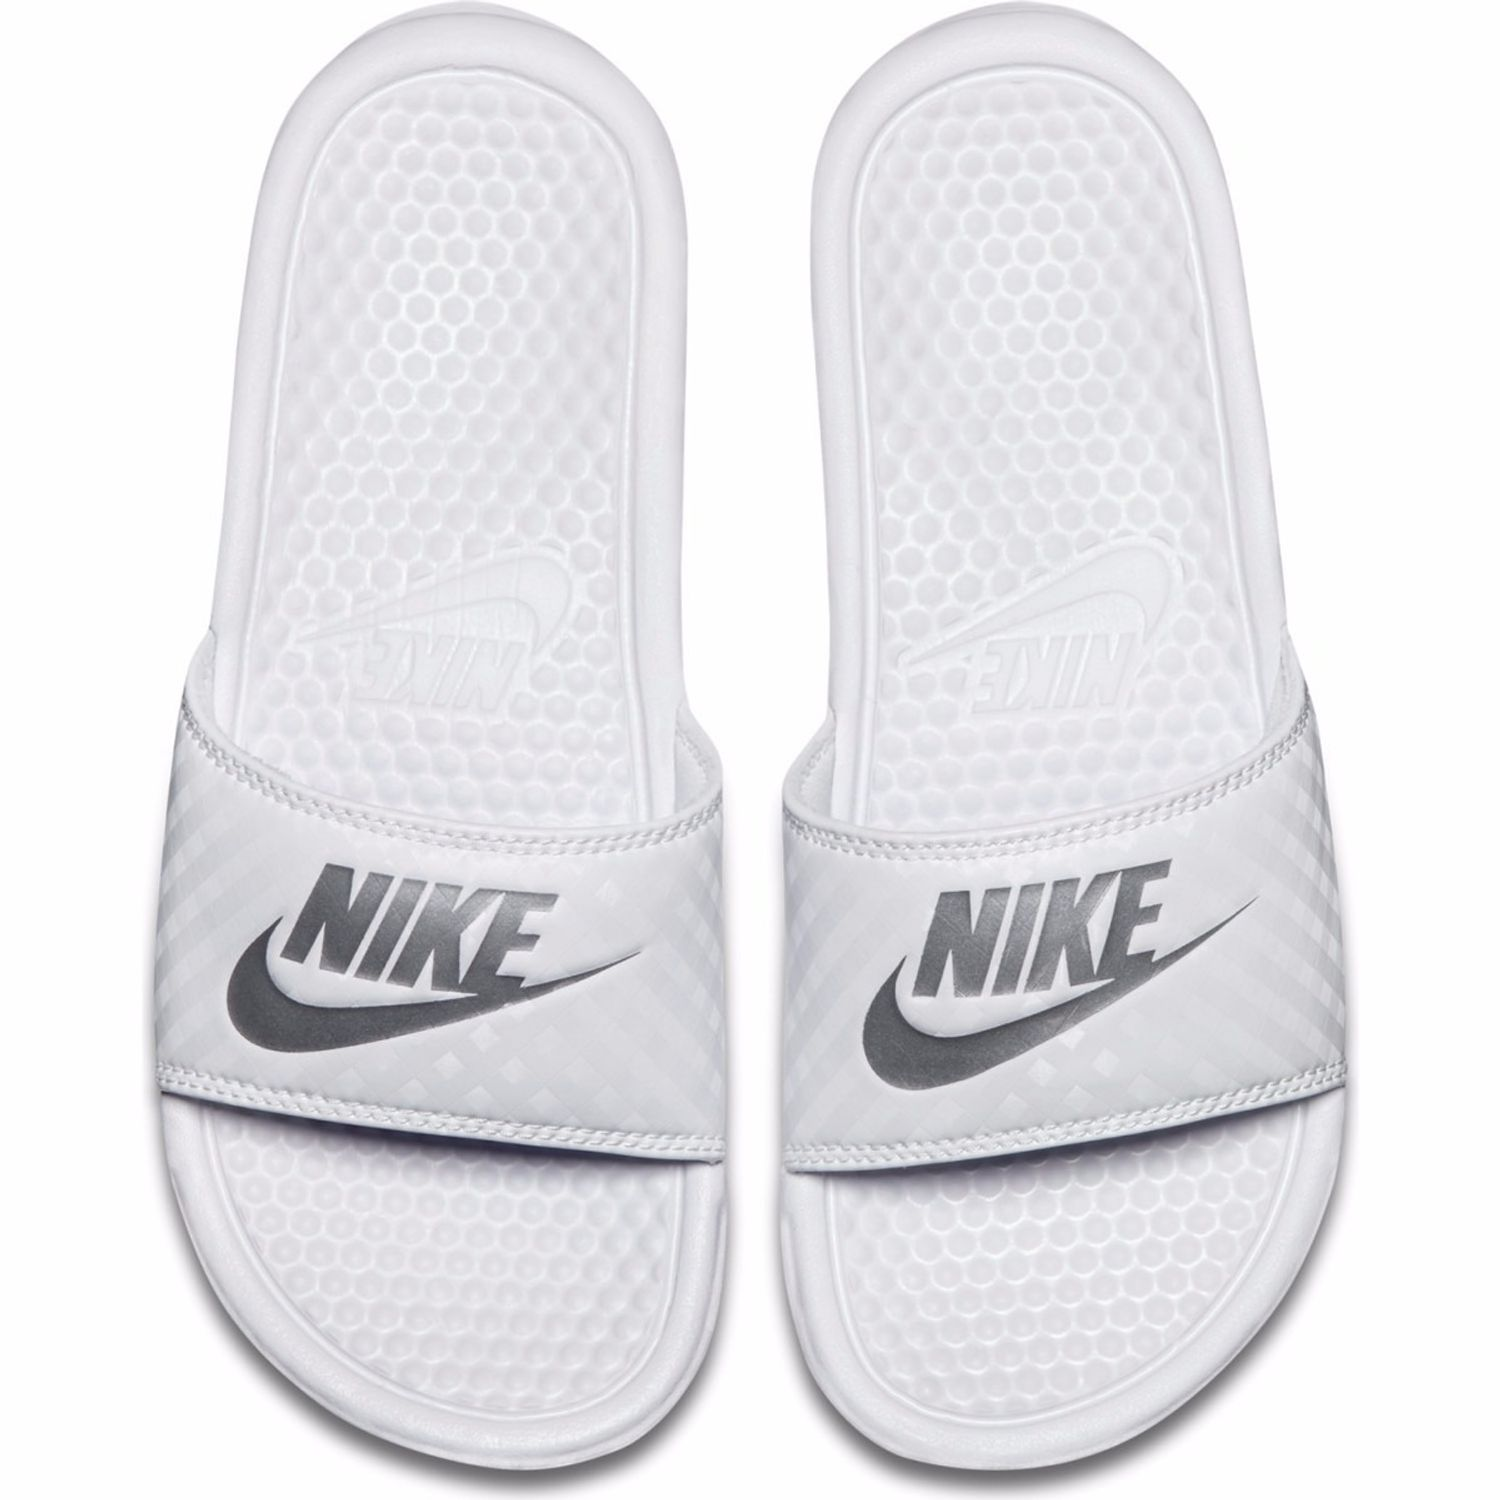 bce425b6ca9 chinelas NIKE Benassi just do it de mujer - sporting